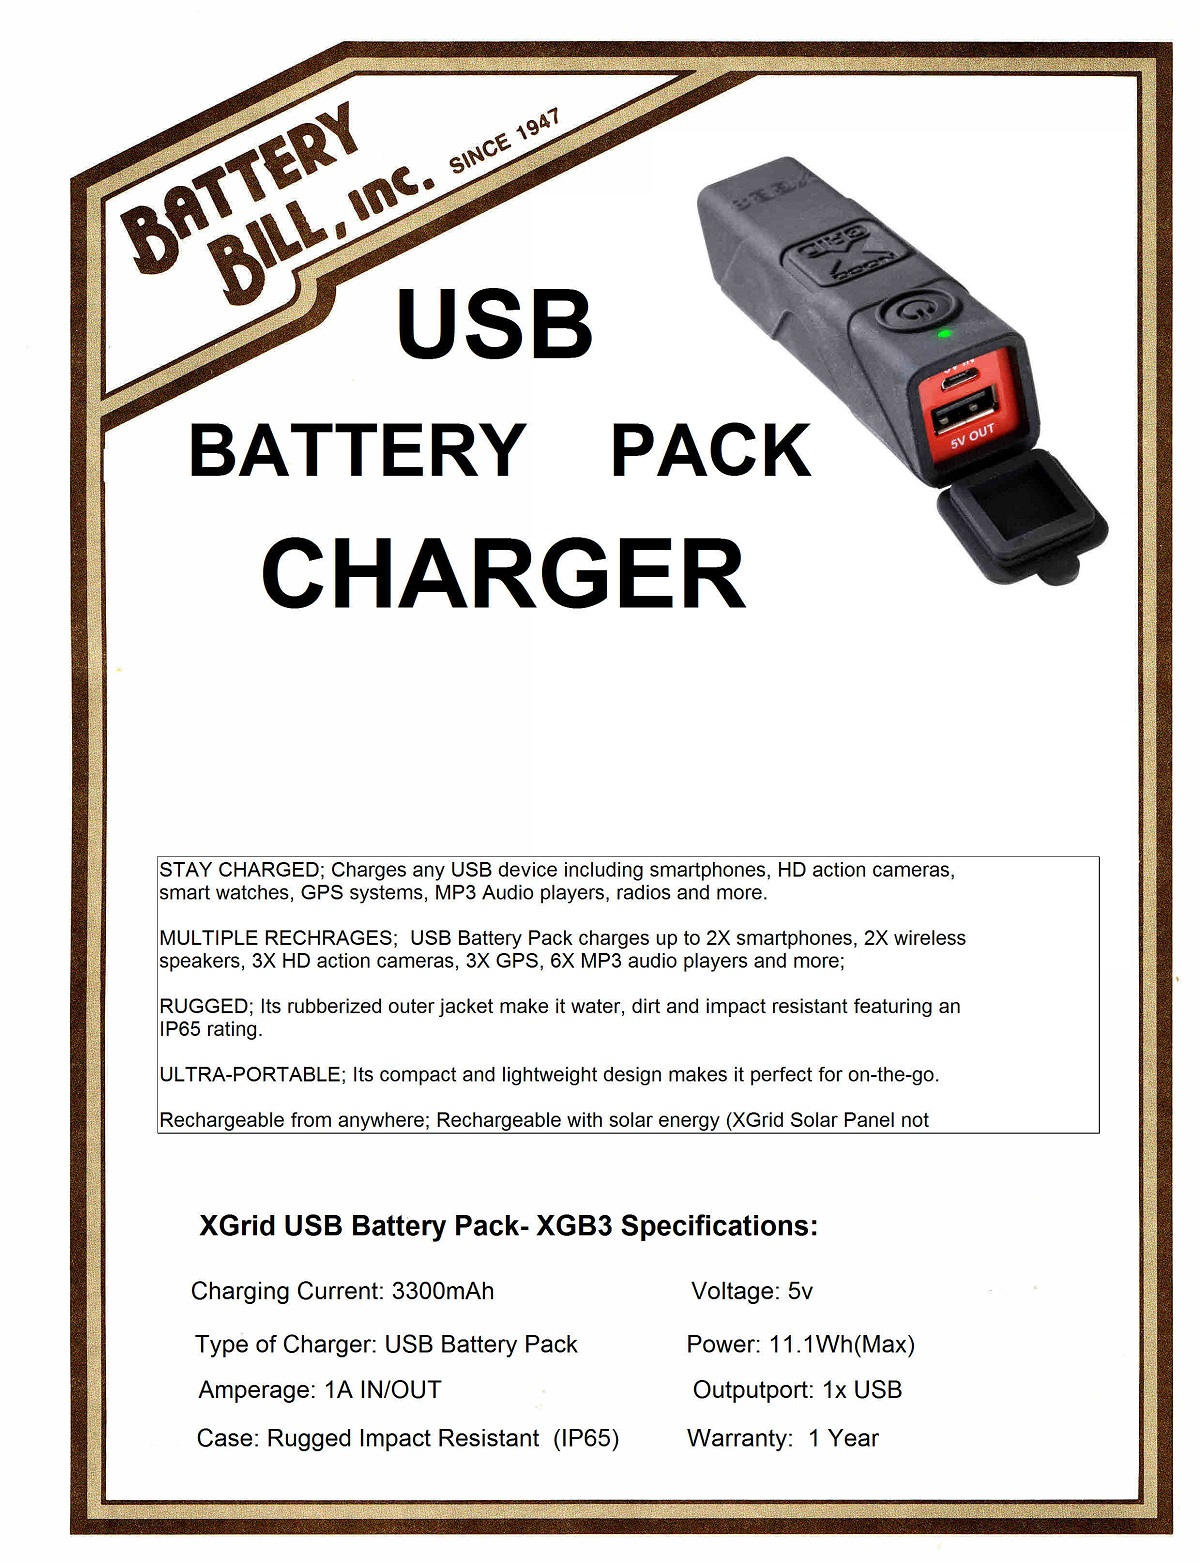 Xgrid USB Battery Pack XGB3 Charger